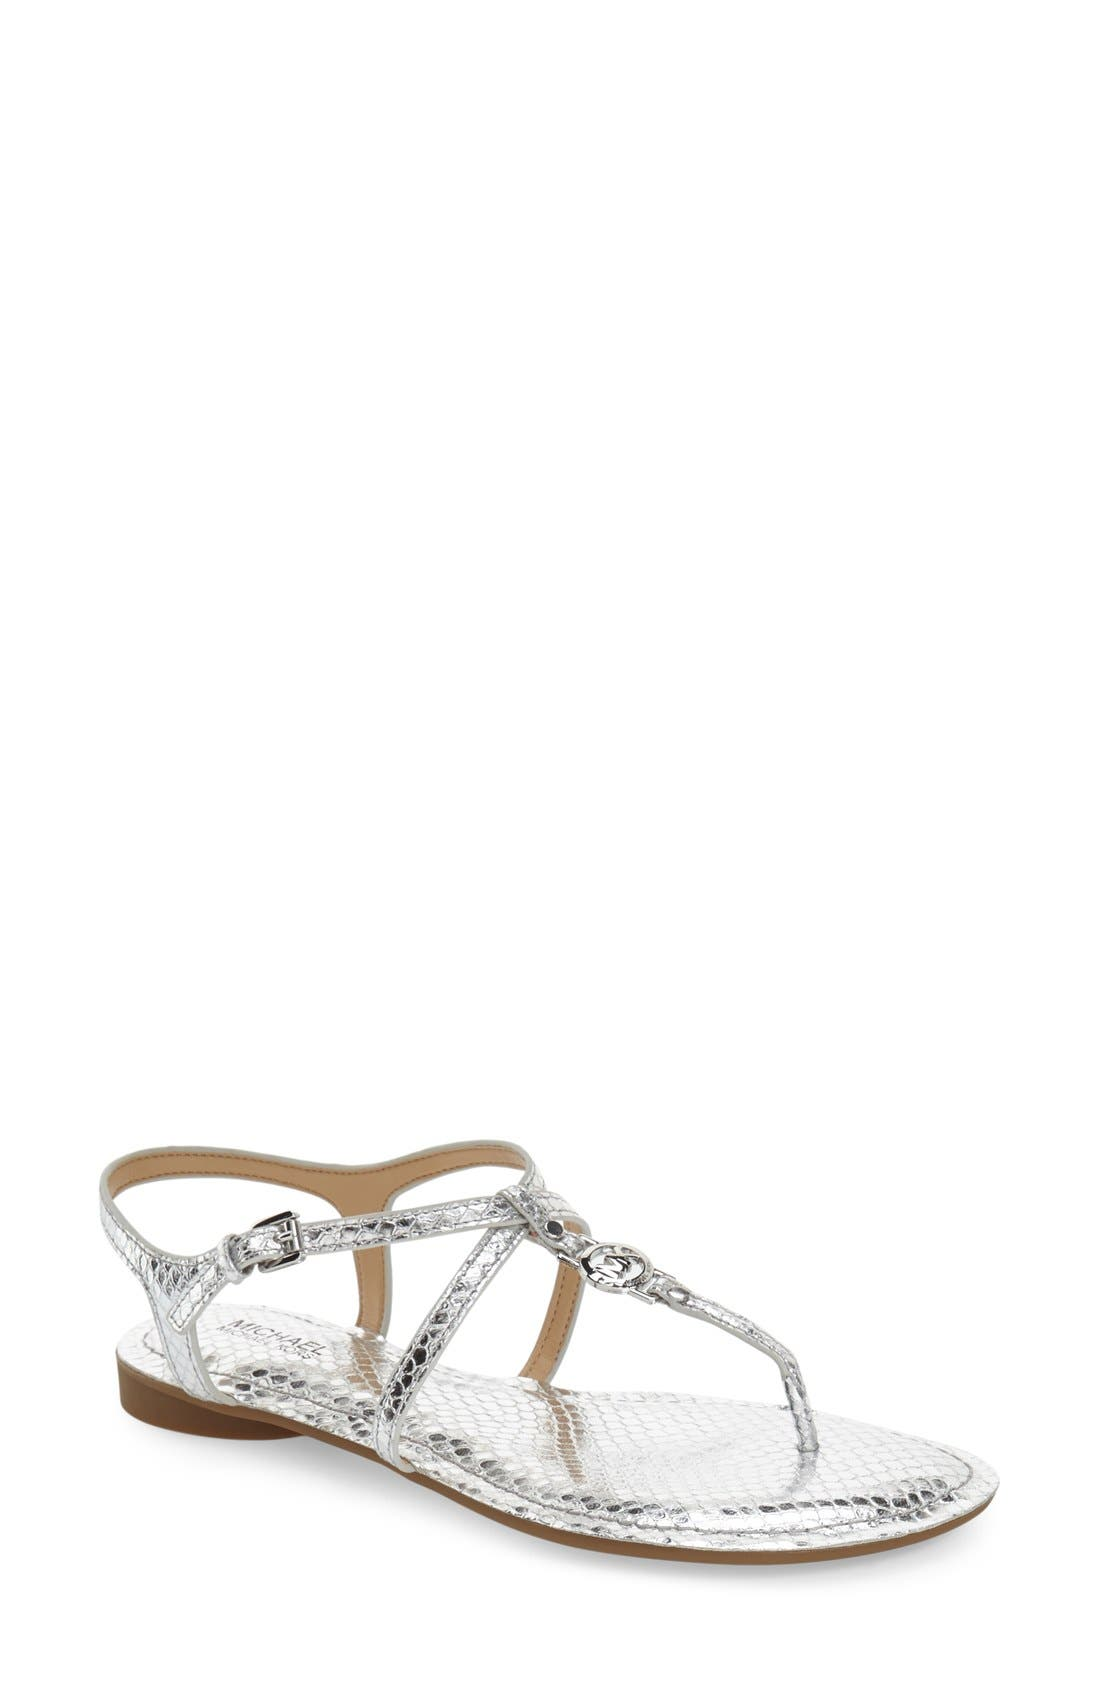 Alternate Image 1 Selected - MICHAEL Michael Kors 'Bethany' Sandal (Women)